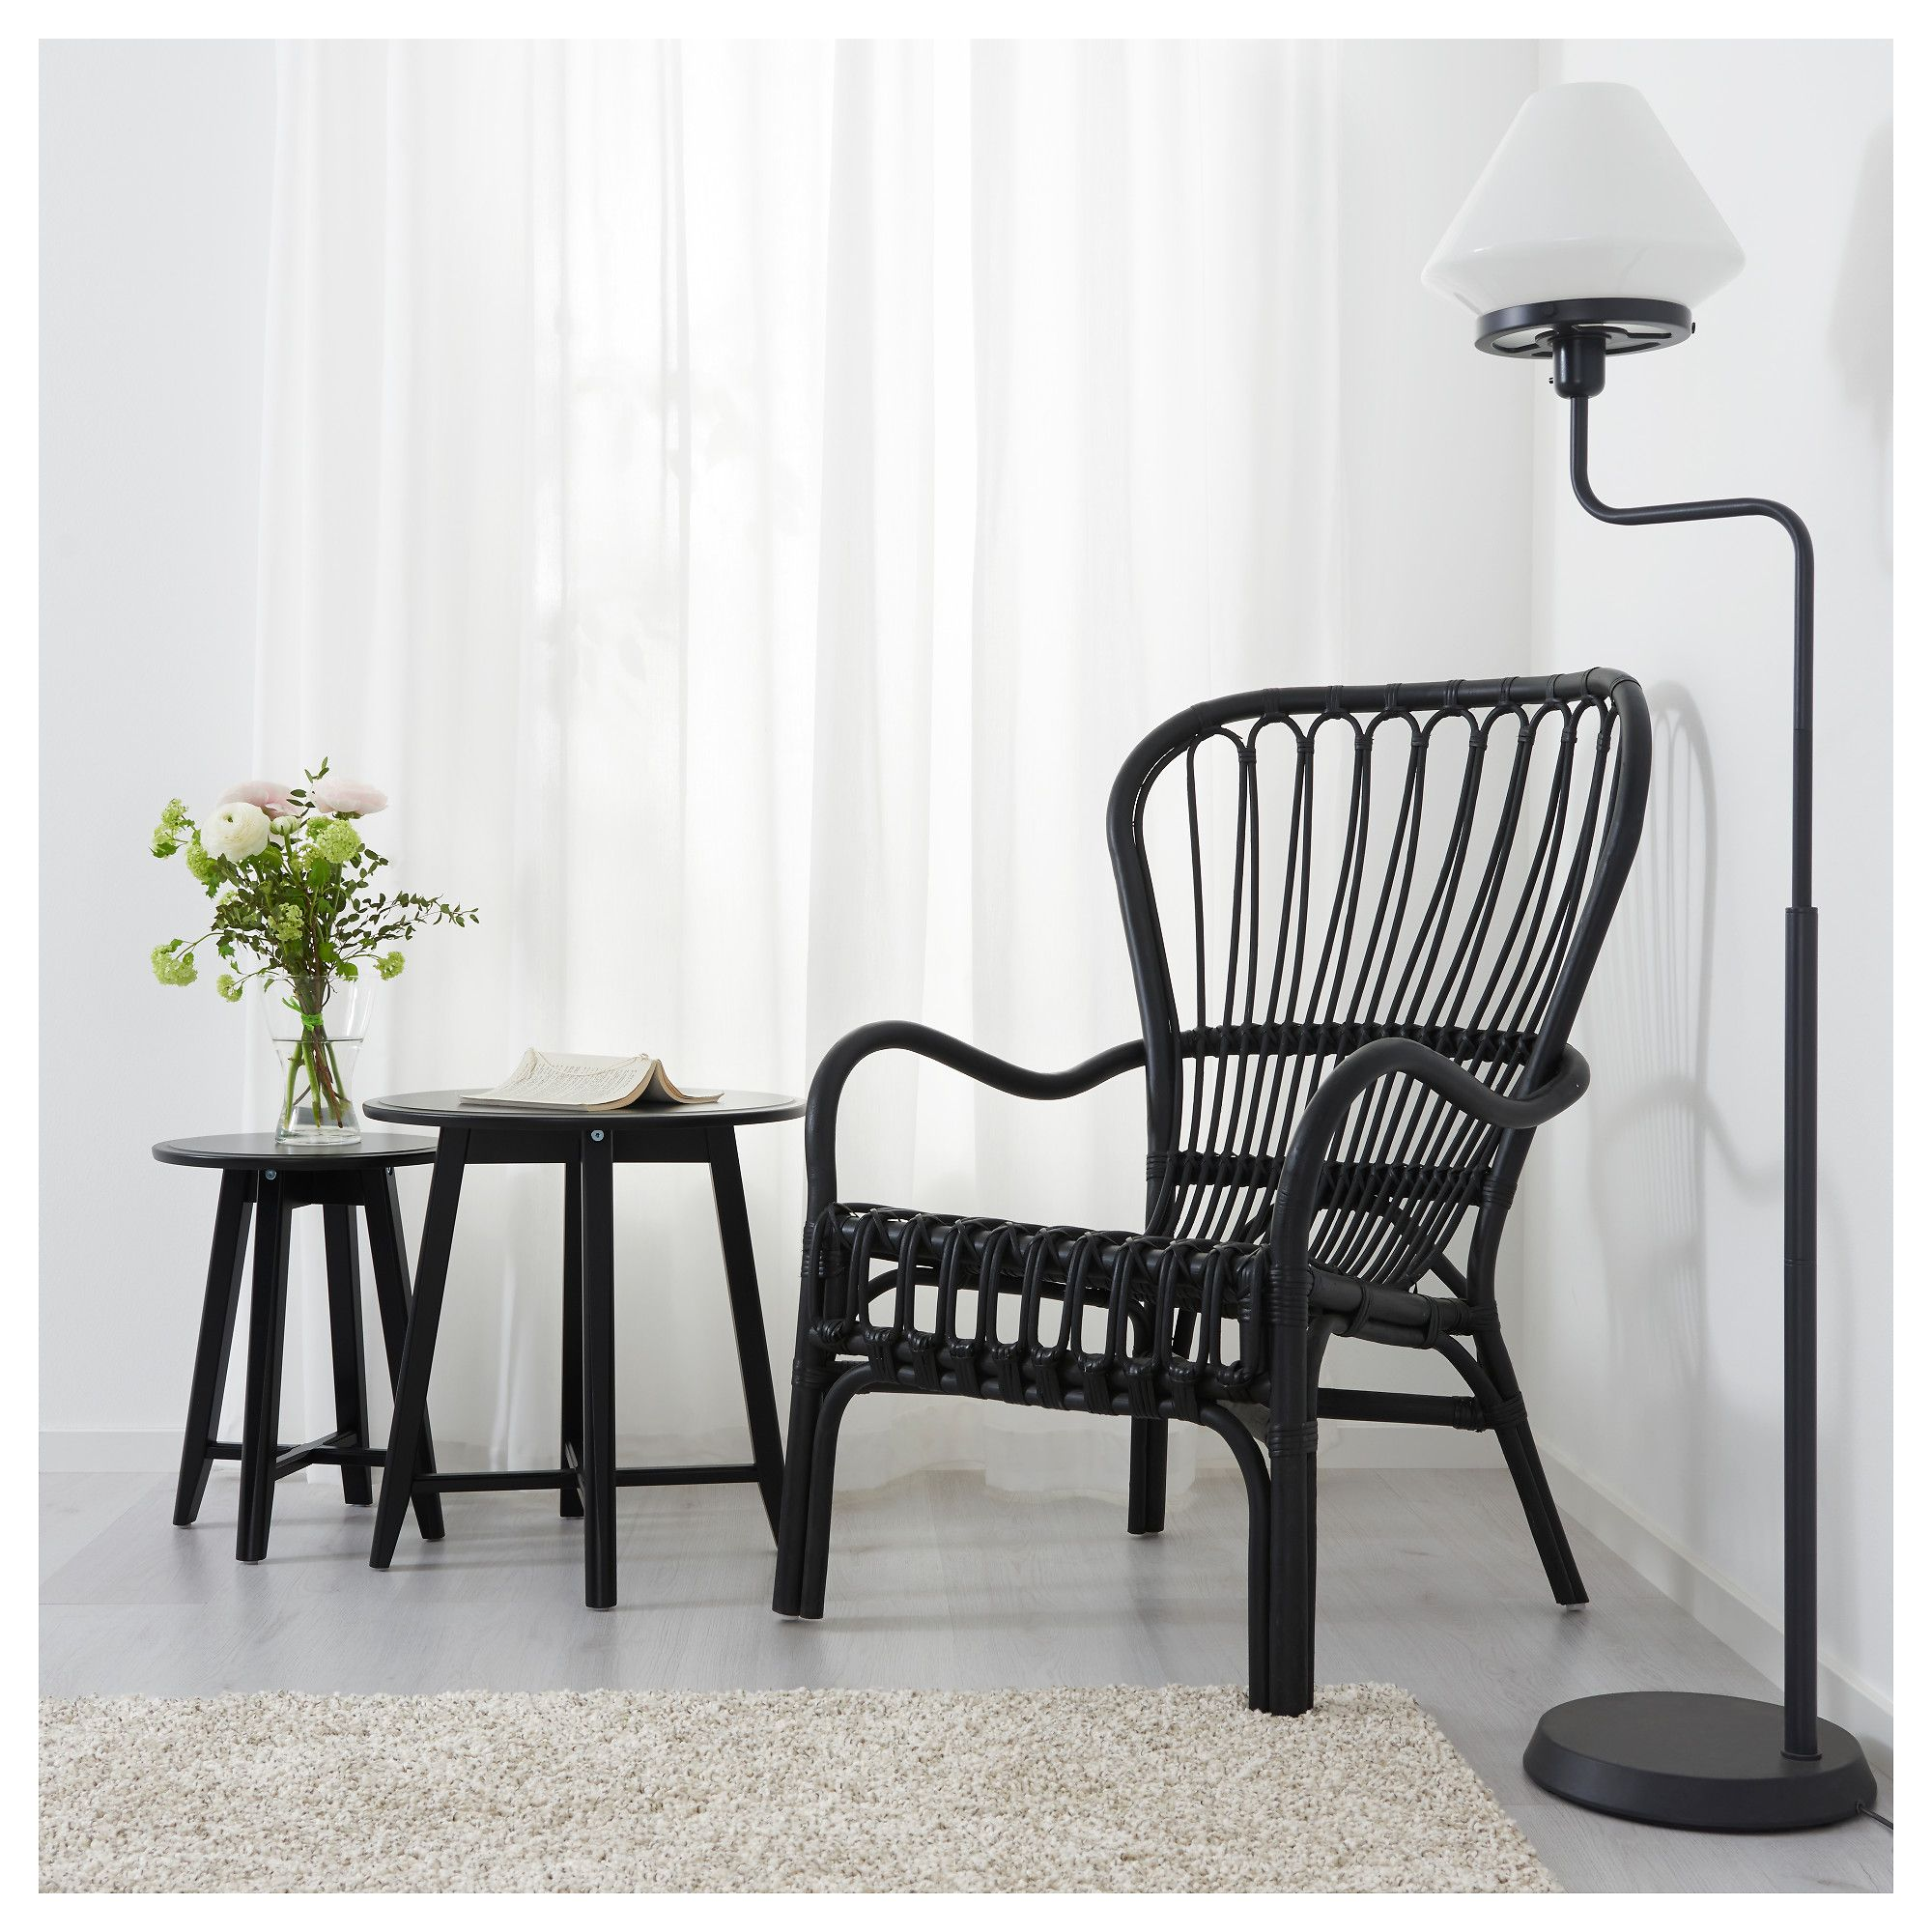 STORSELE, Armchair, The Furniture Is Handmade And